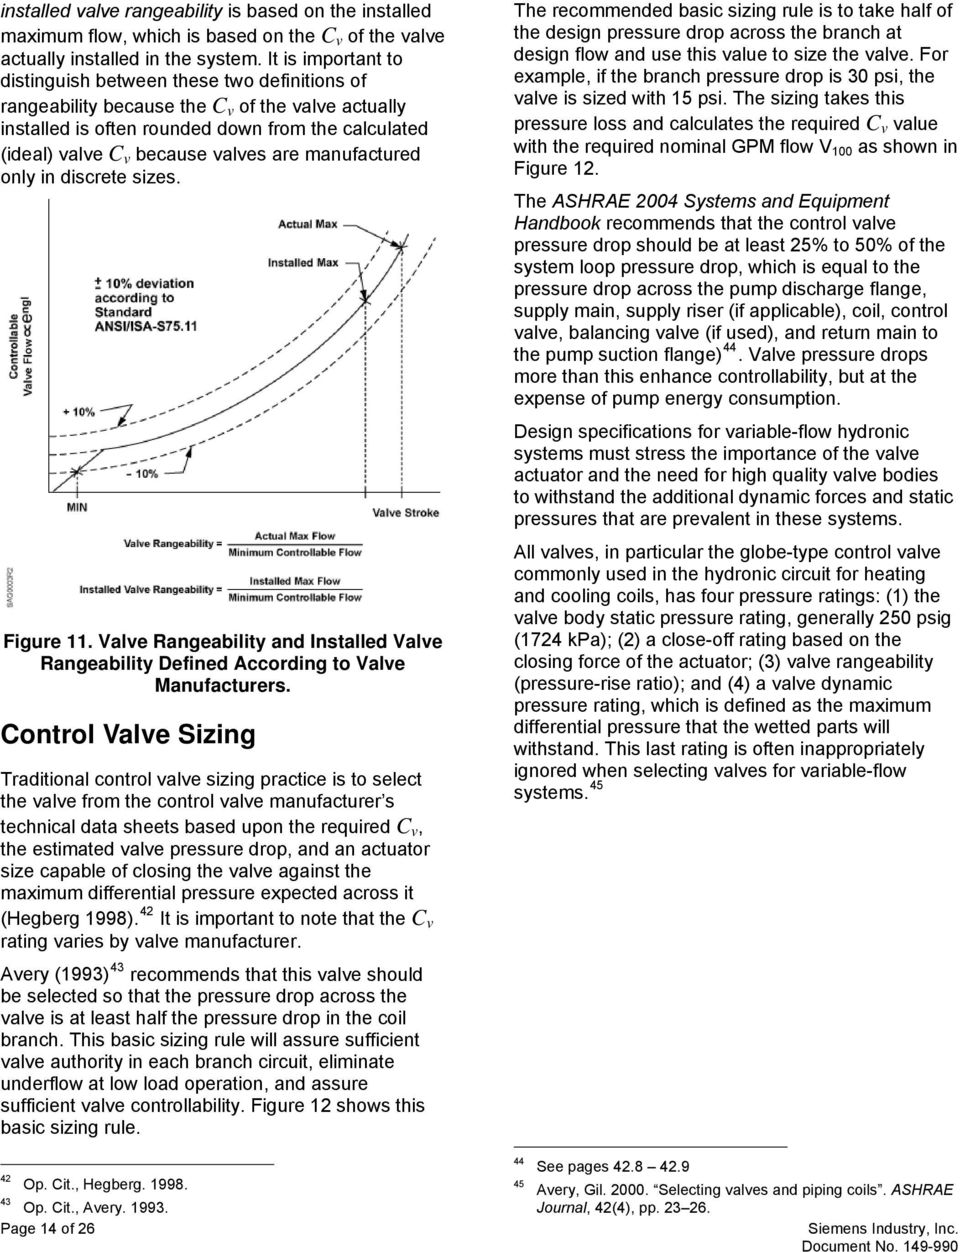 Balancing Variable-flow Hydronic Systems  Self-Balancing